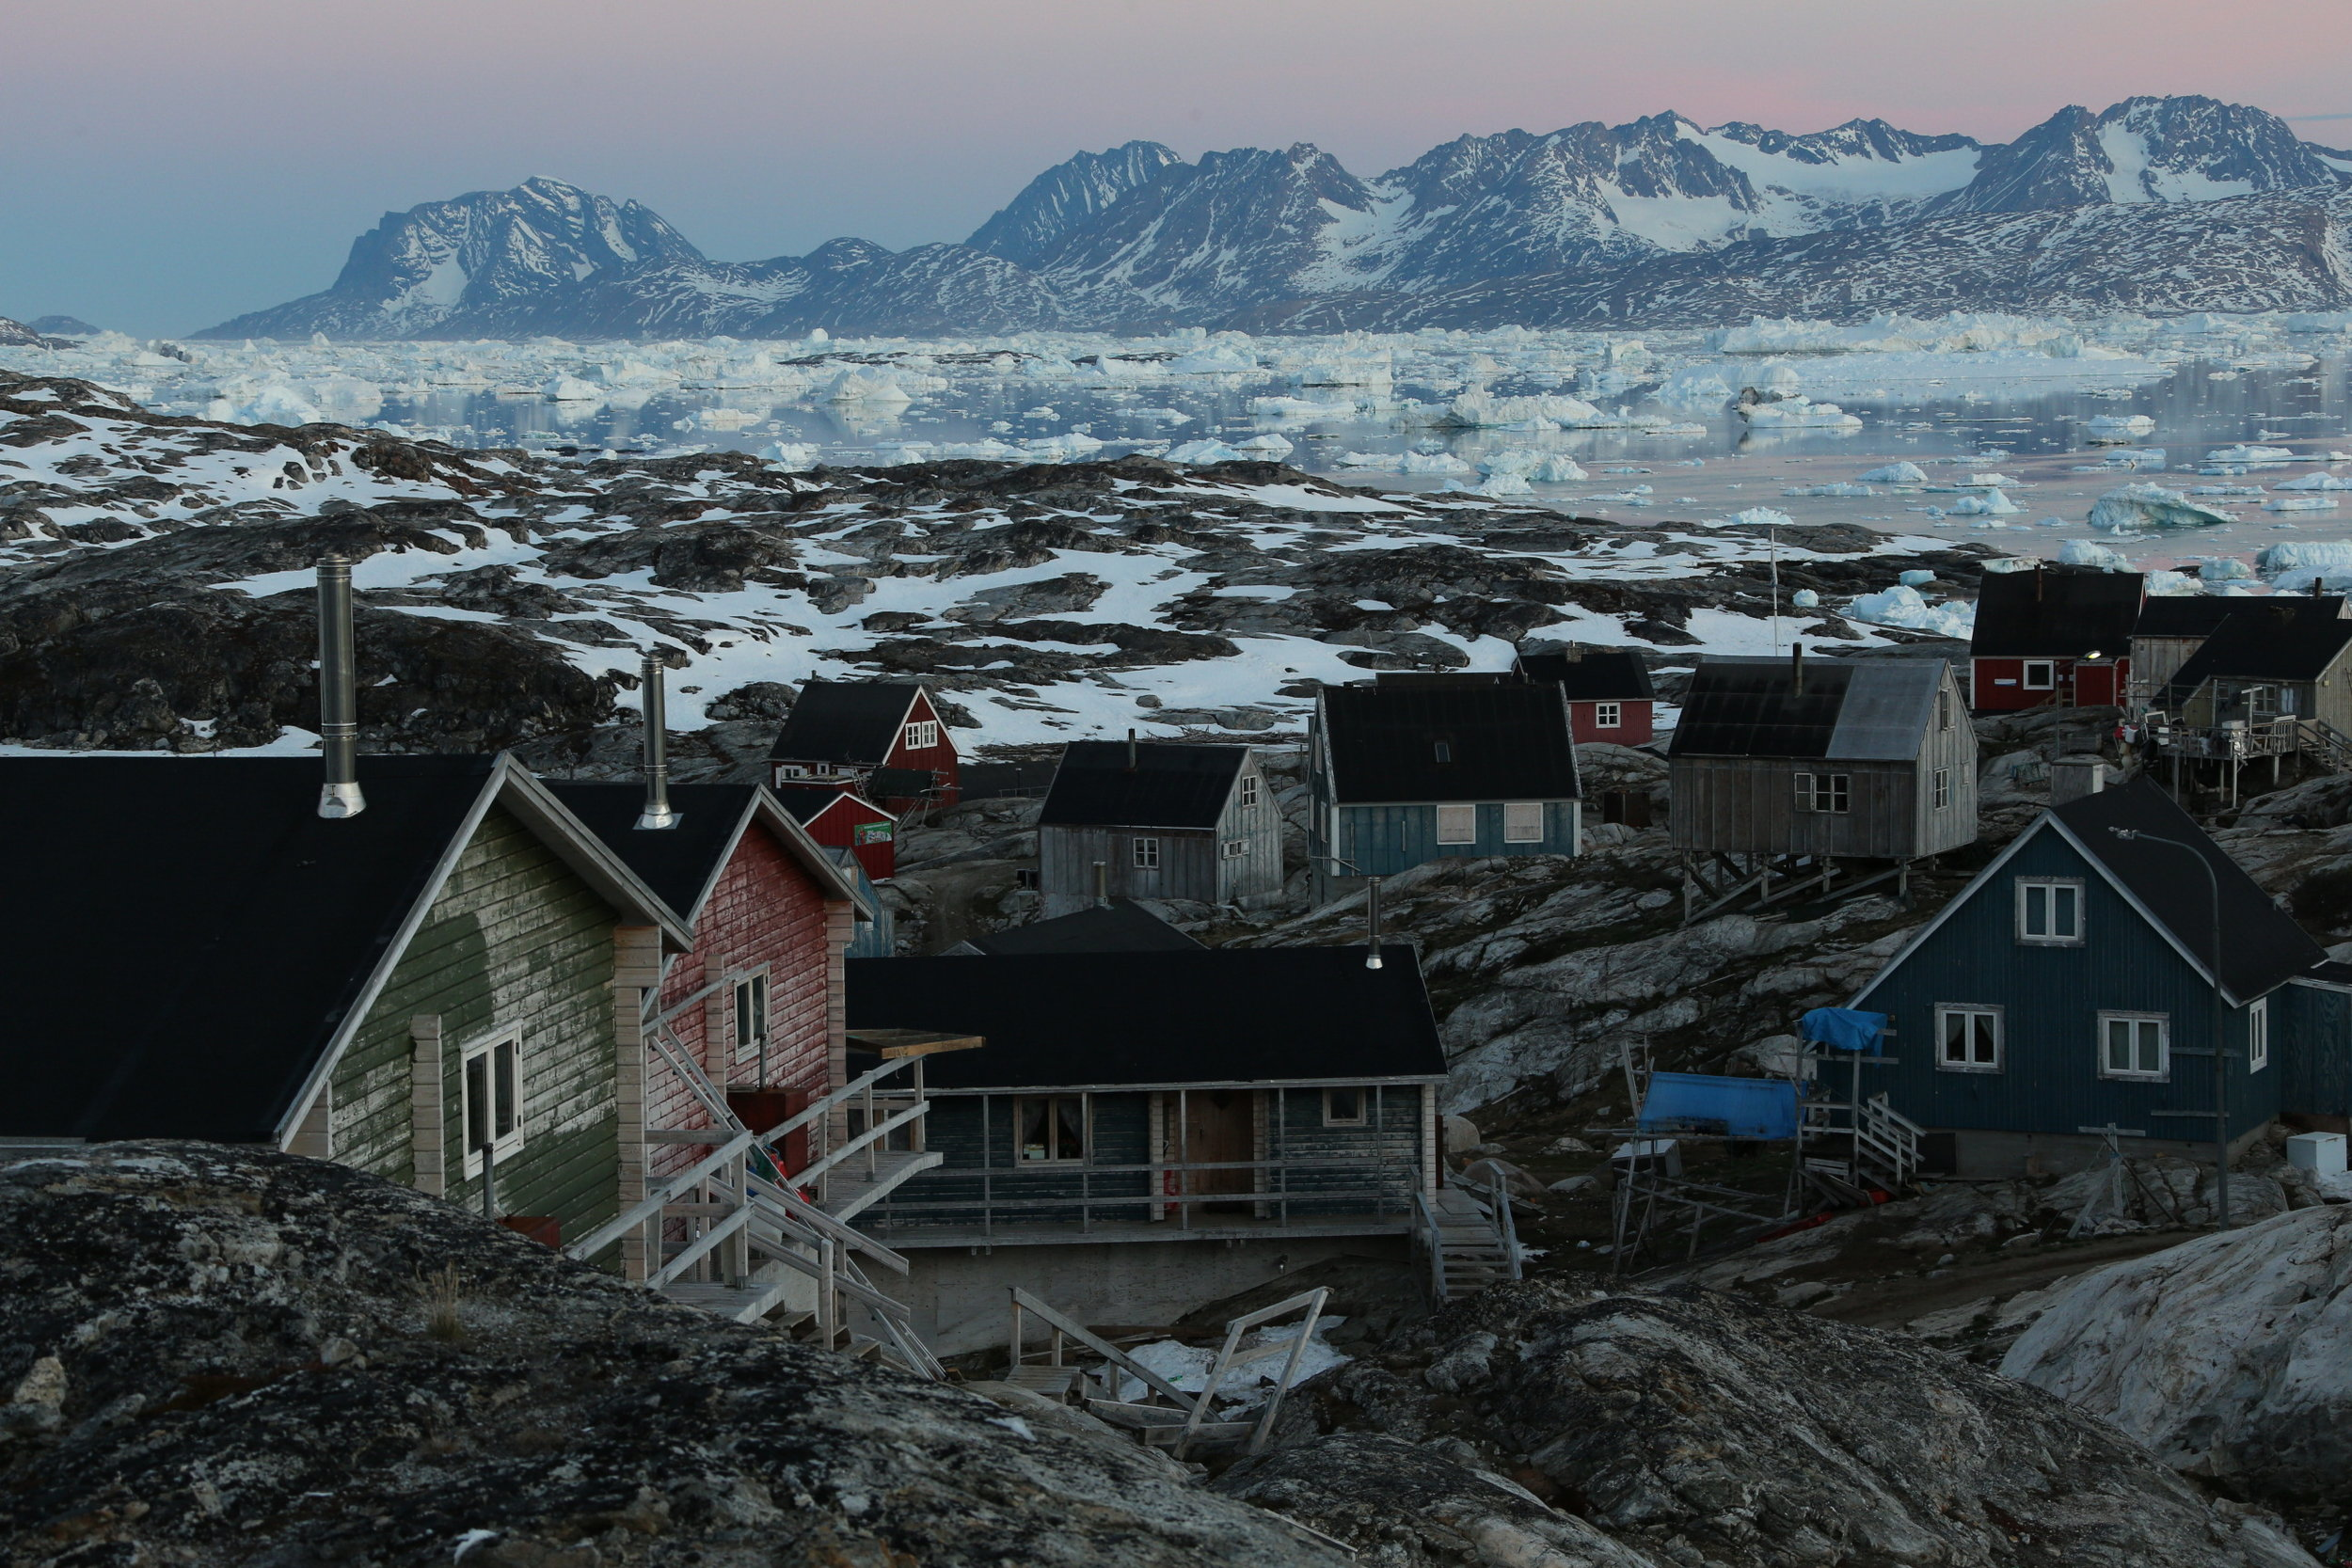 Greenlandic houses in Tinit, east Greenland.